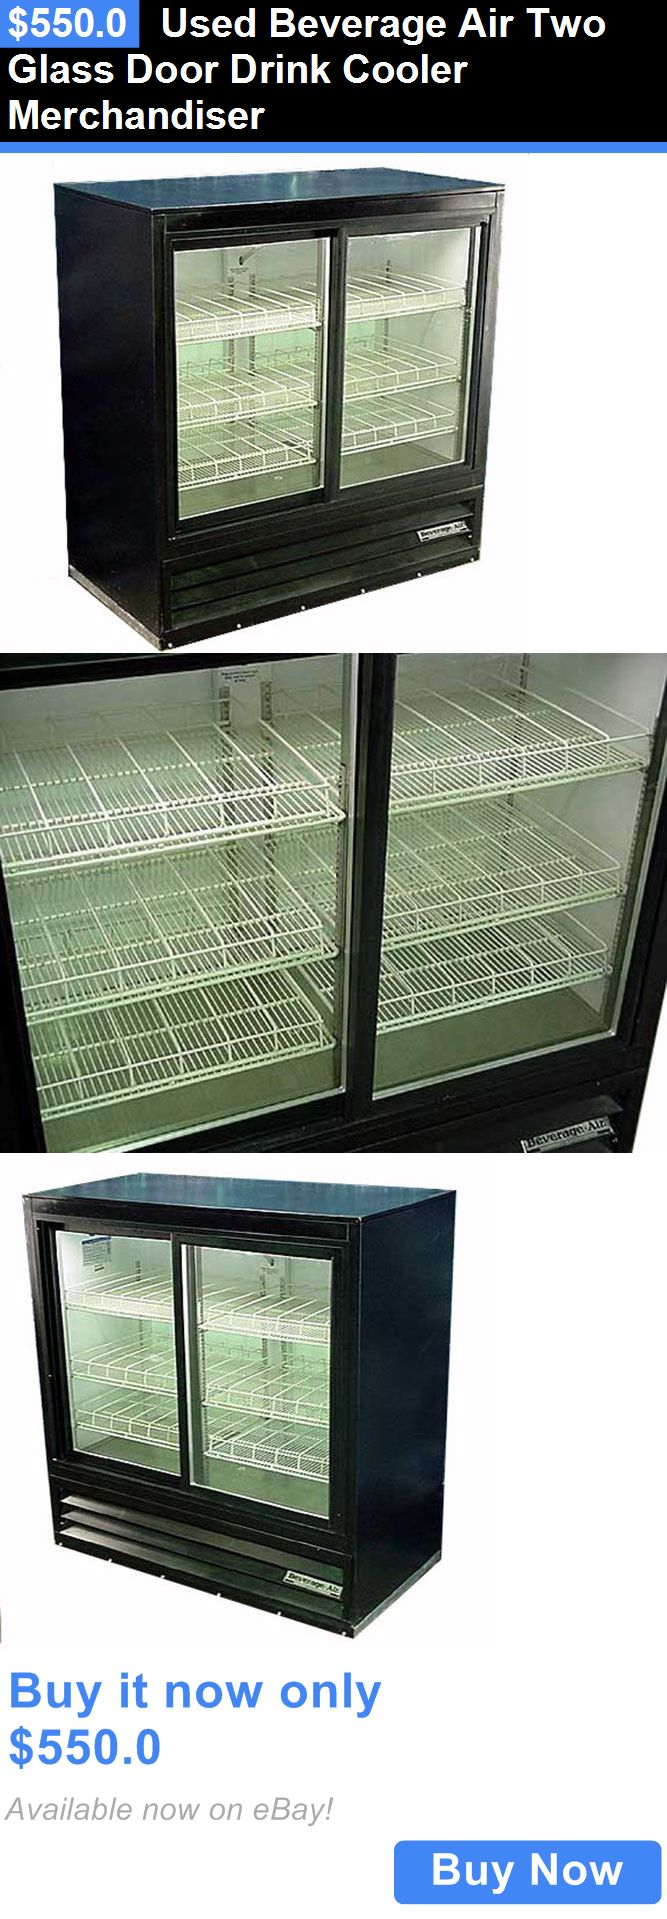 Food And Drink: Used Beverage Air Two Glass Door Drink Cooler Merchandiser BUY IT NOW ONLY: $550.0